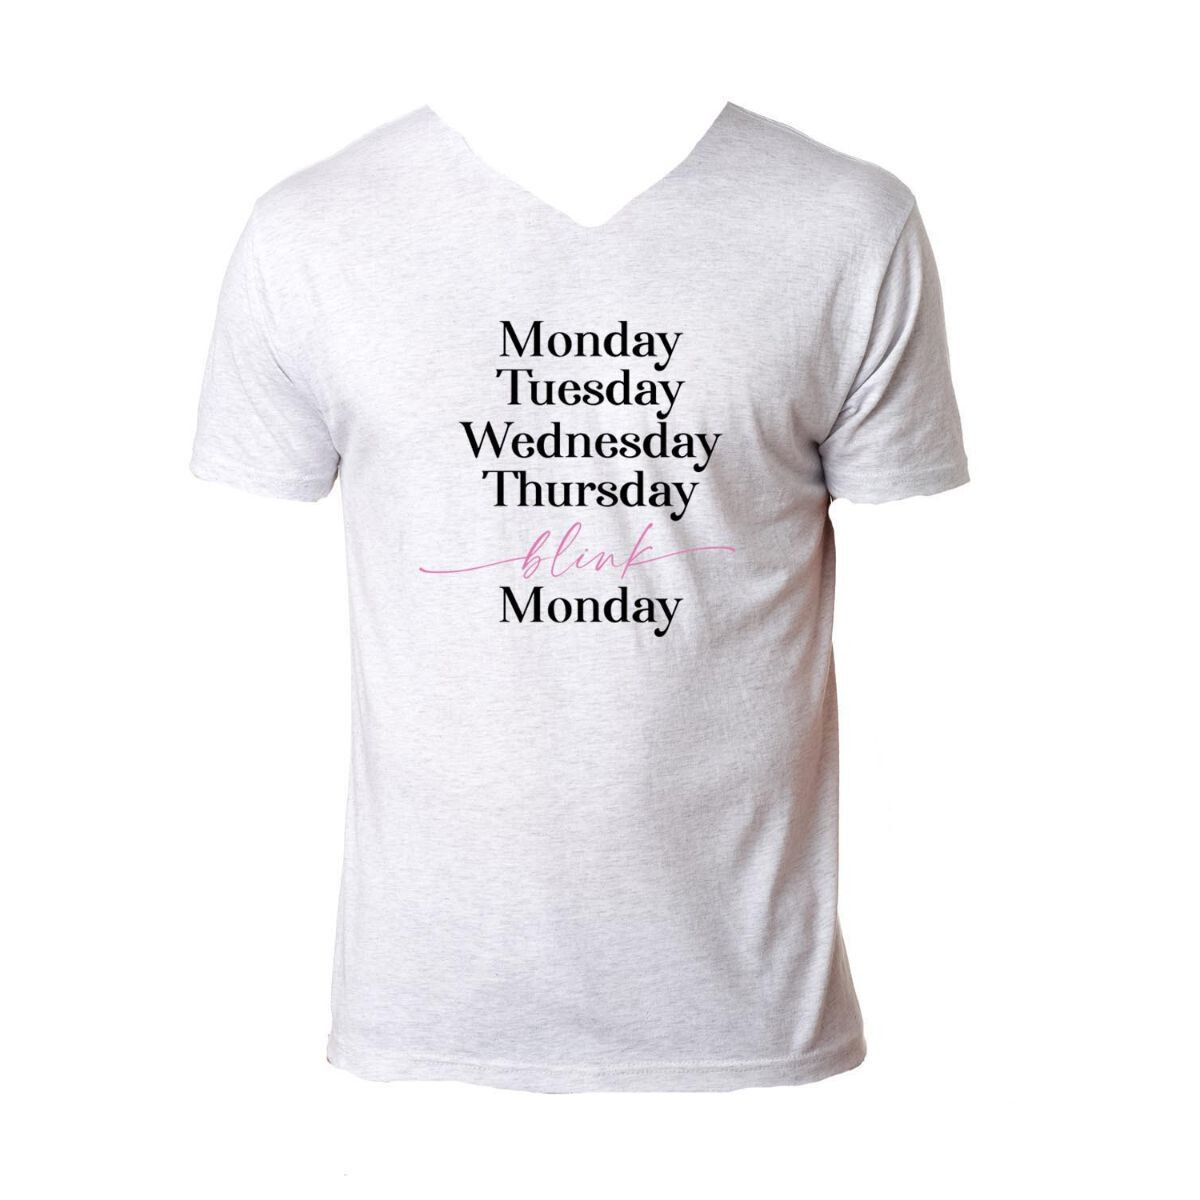 Days Of The Week V-Neck Tee